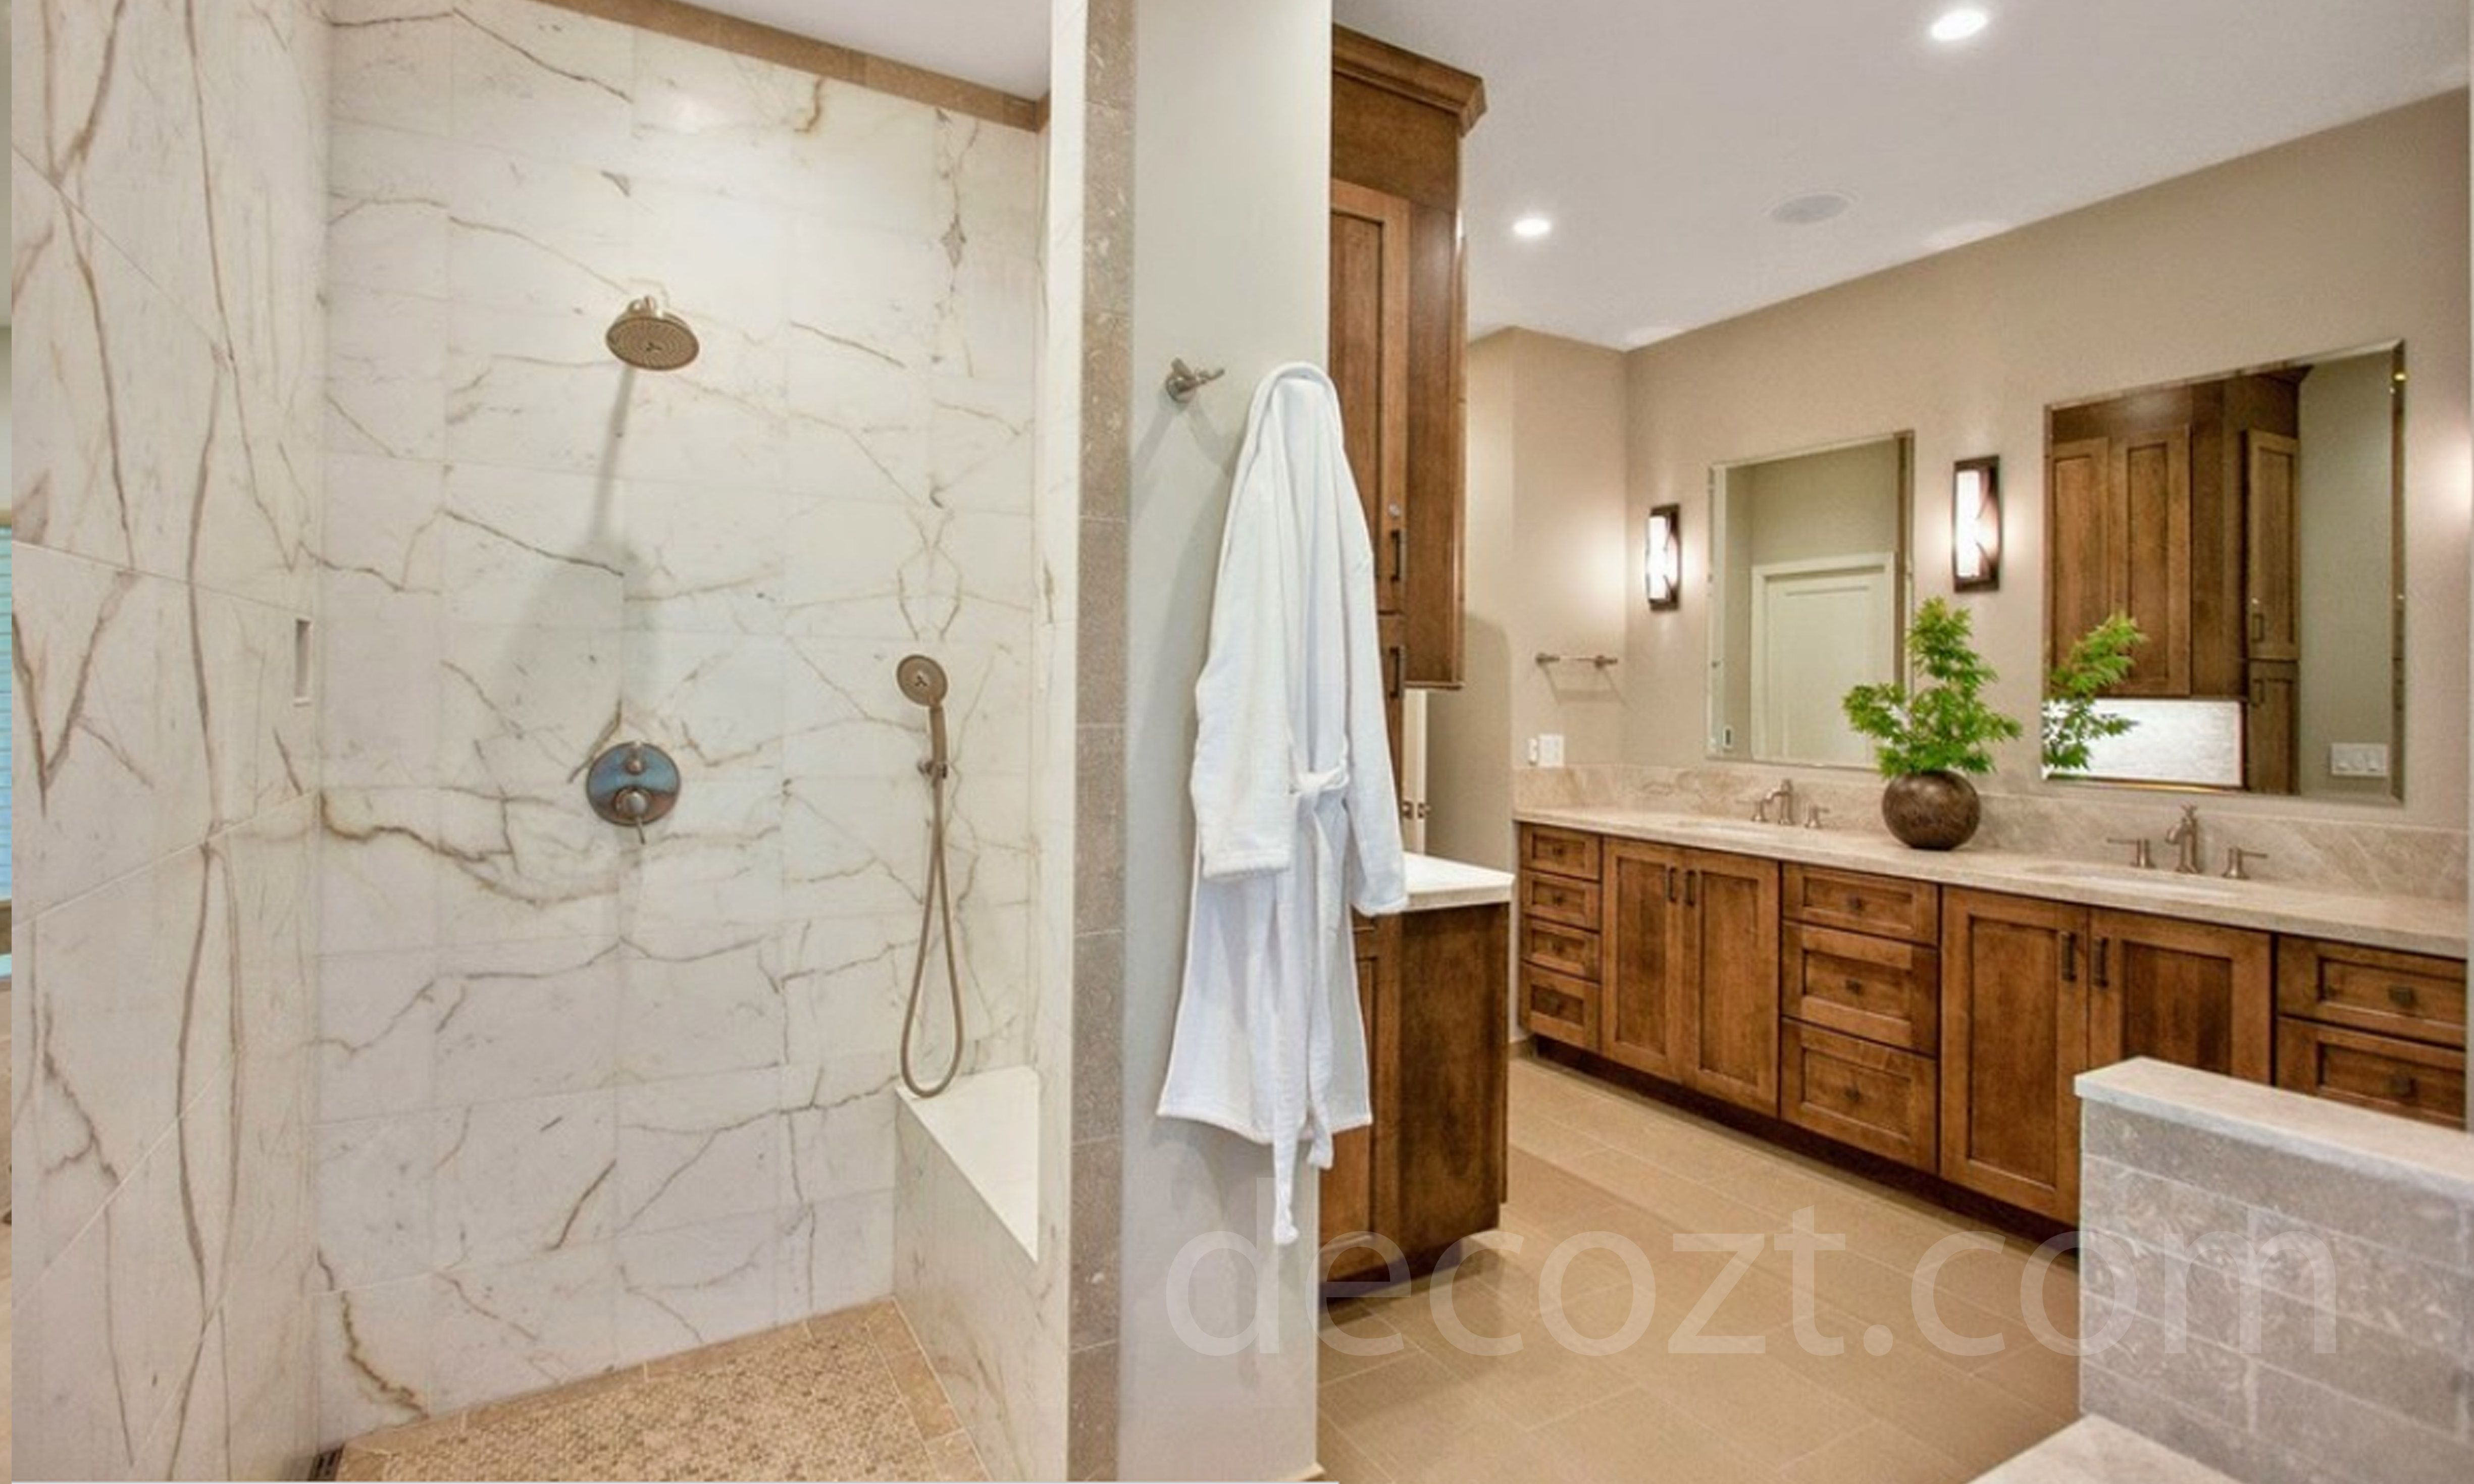 Leathered Granite For Natural Countertops Ideas: Basement 13 Zen Neutrals  Home Color Scheme With Taj